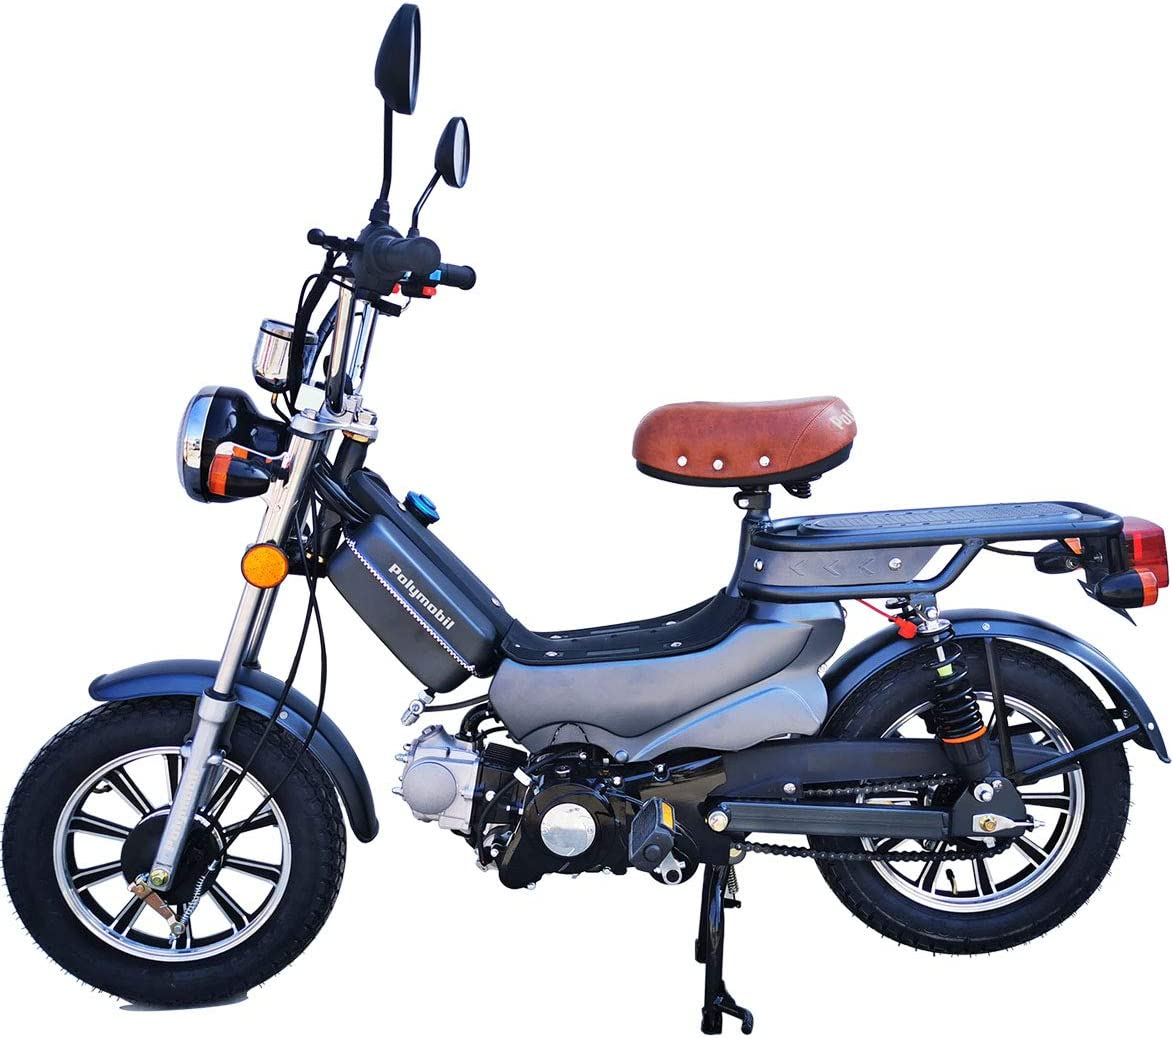 Generies 49cc Gas Powered Moped Scooter Bike